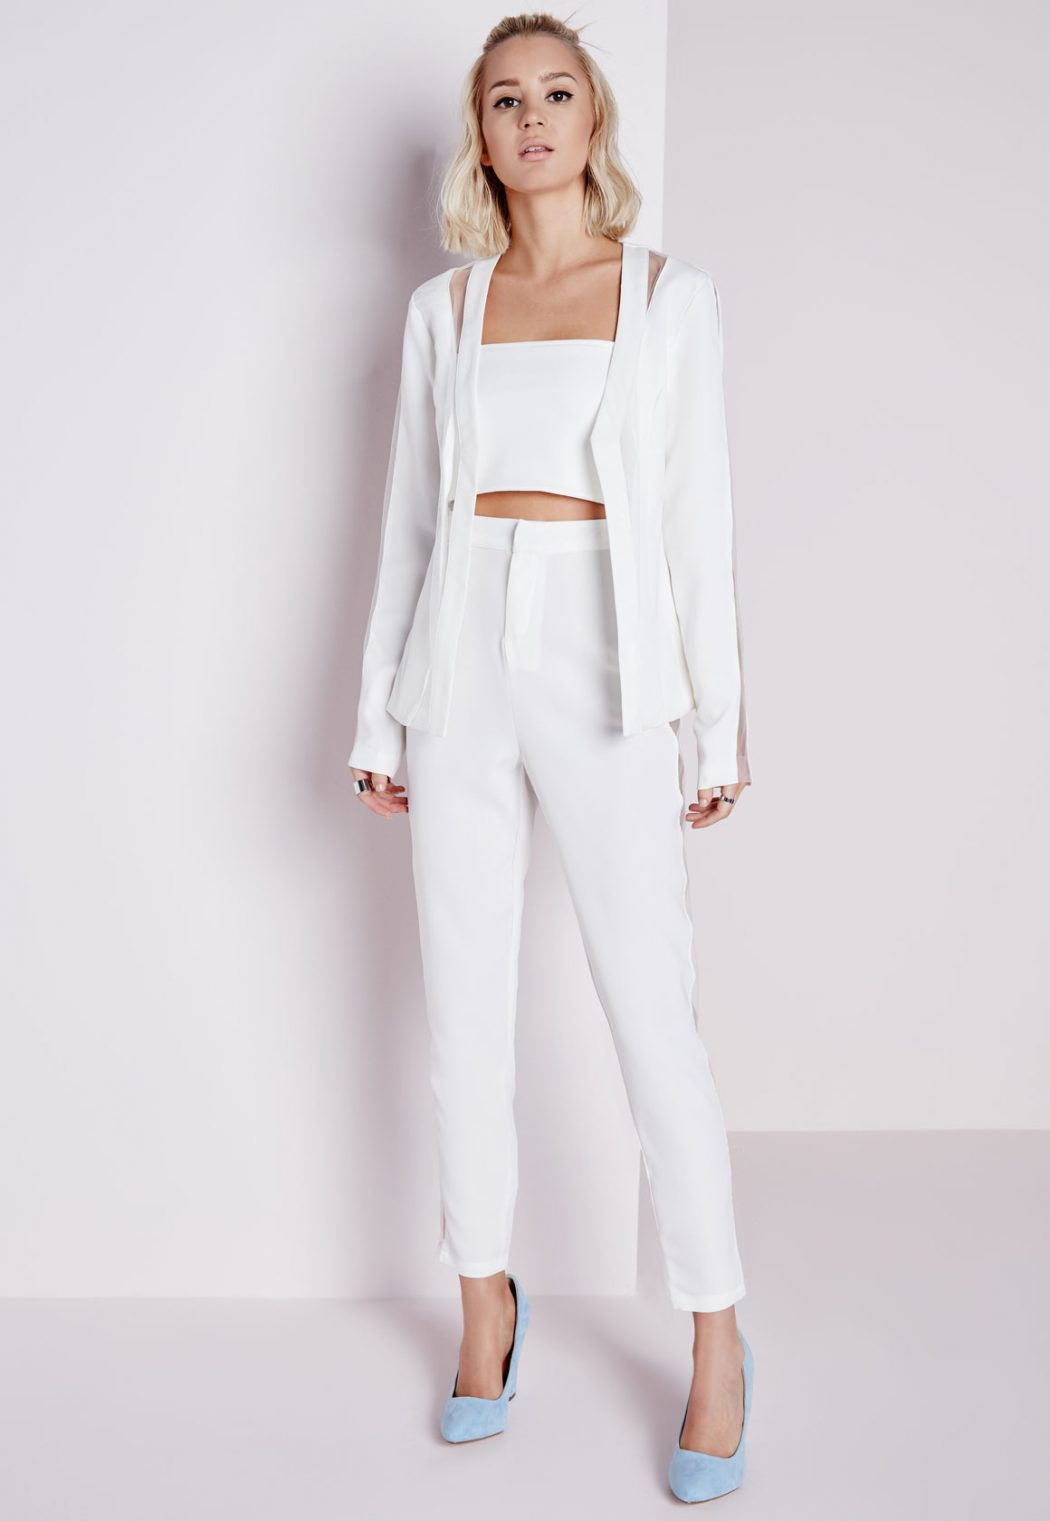 20+ Hottest White Party Outfits Ideas for Women in 2020 ...